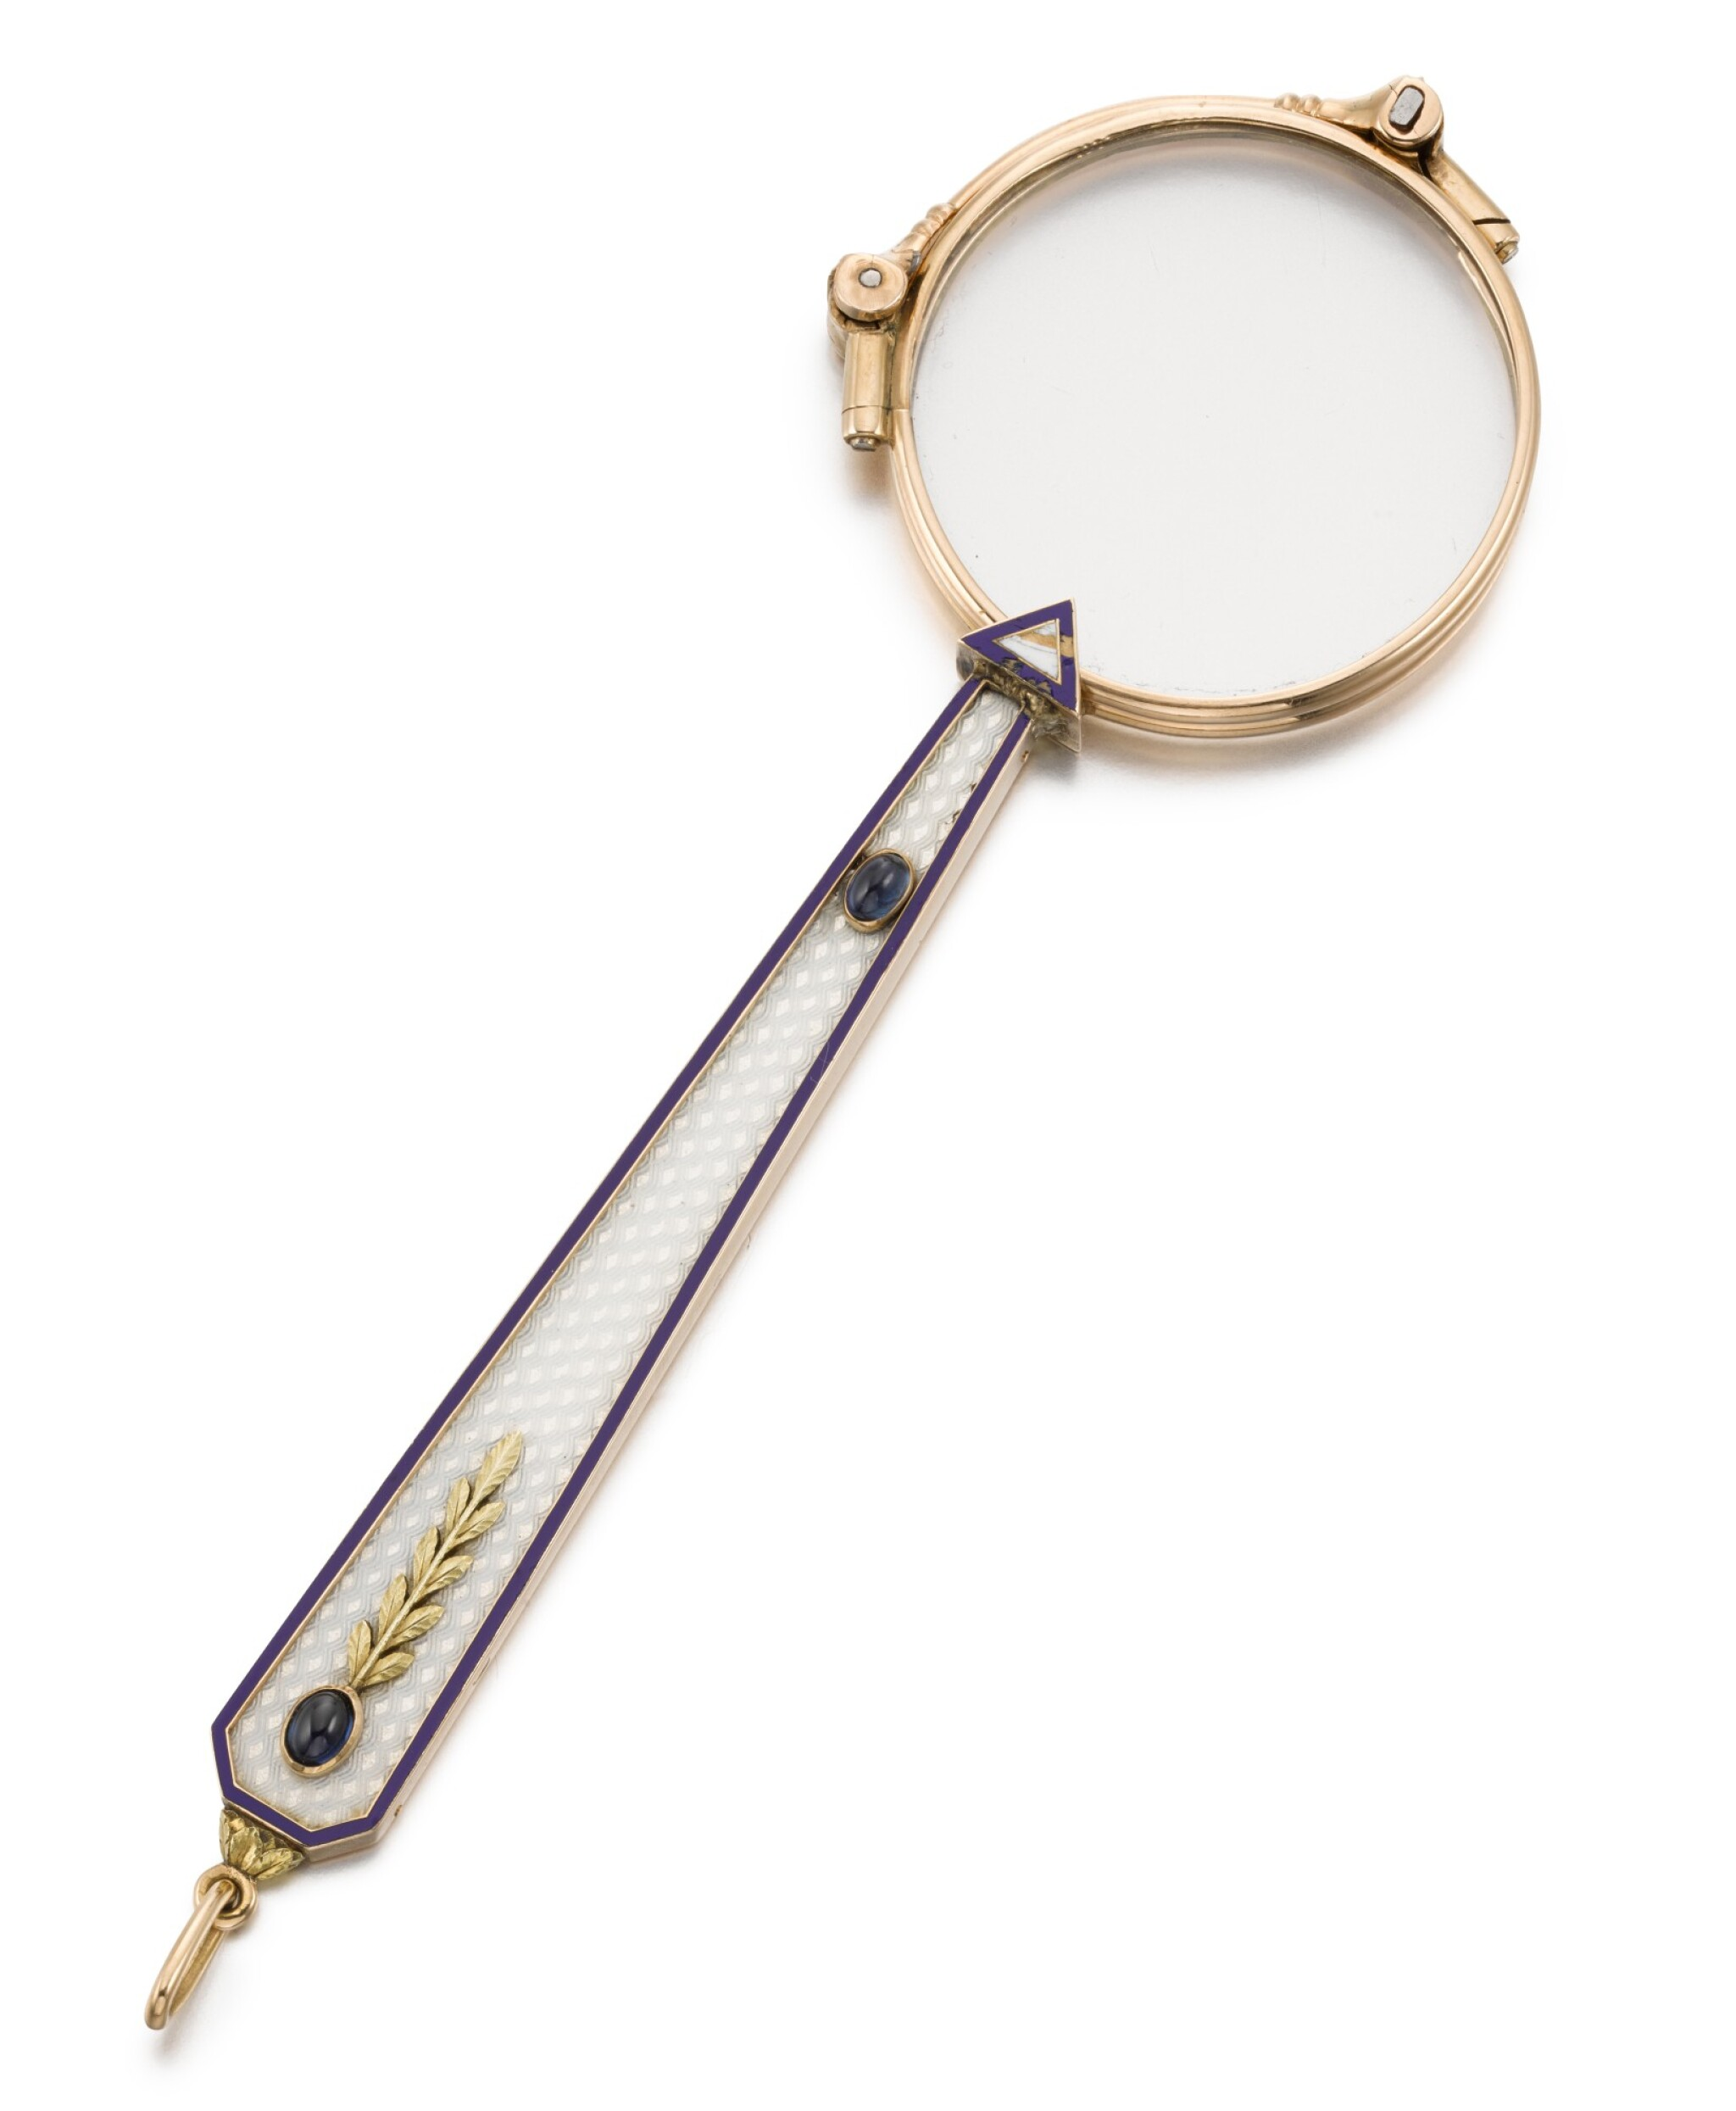 View full screen - View 1 of Lot 81. A Fabergé jewelled and guilloché enamel gold-mounted lorgnette, workmaster Henrik Wigström, St Petersburg, circa 1904.